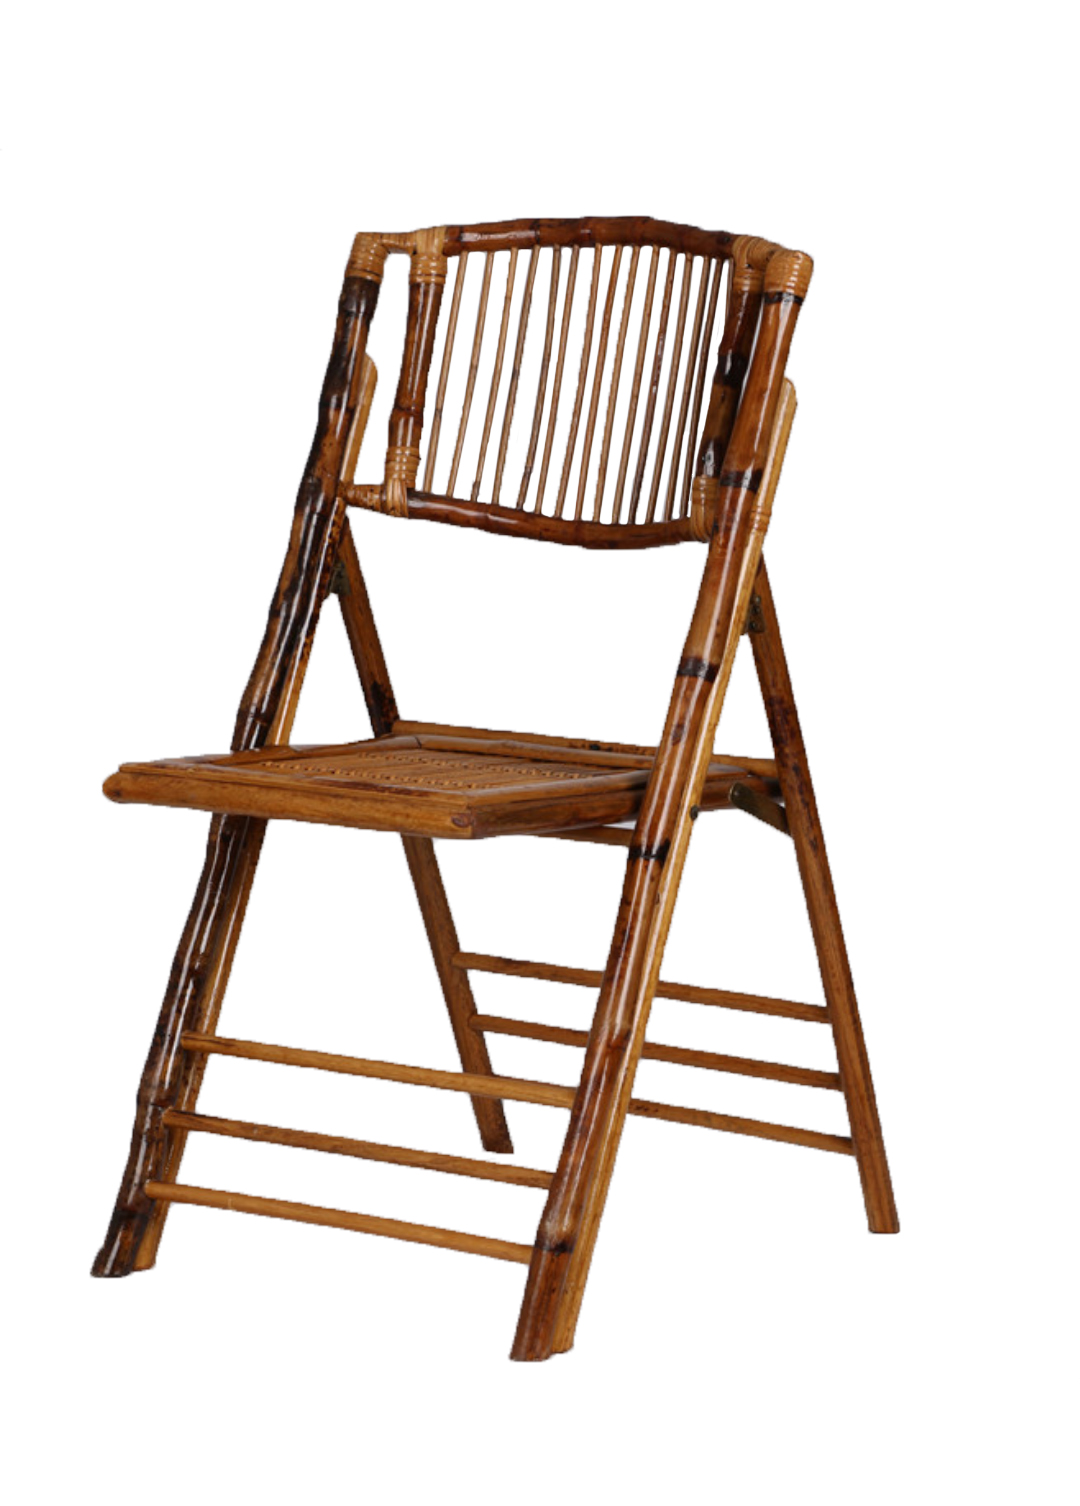 Bamboo Chair Black Label